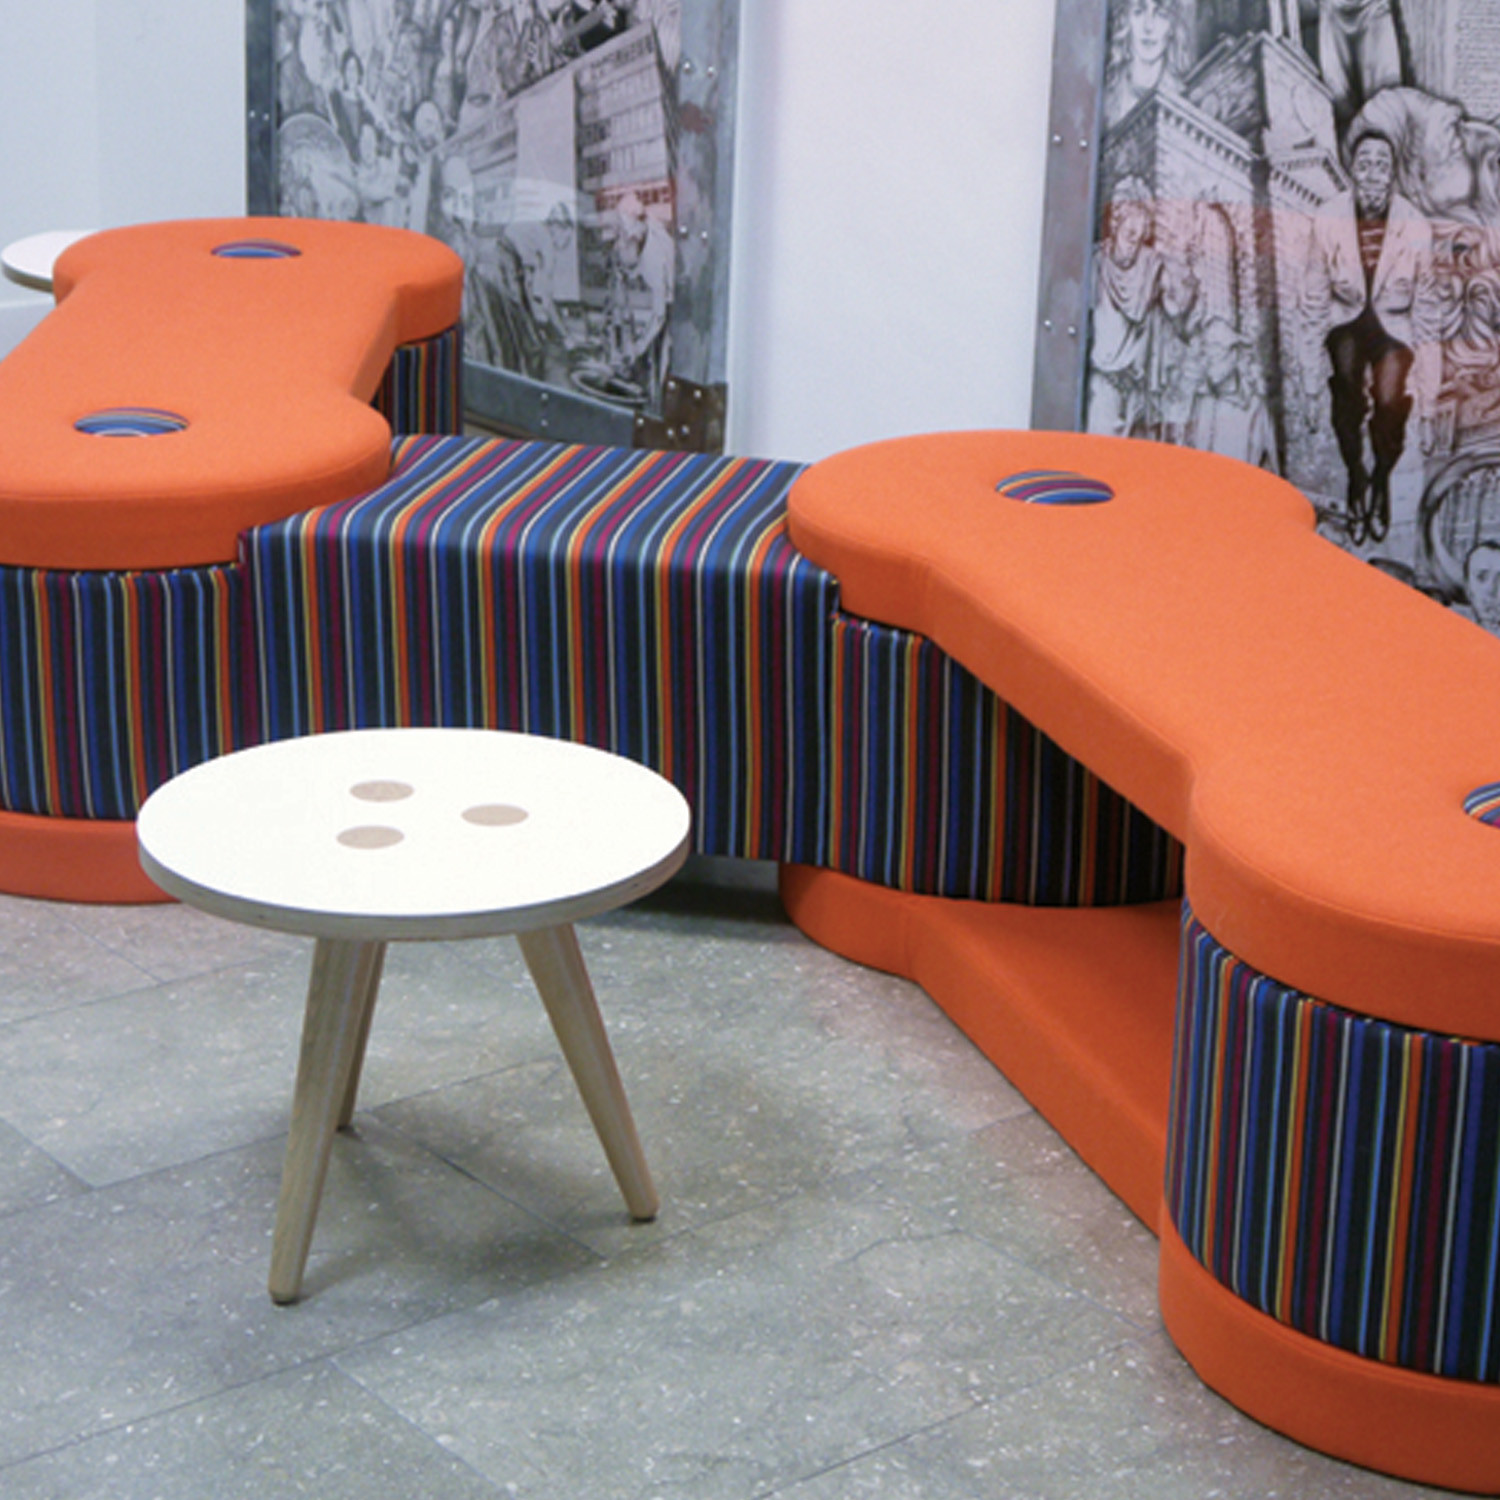 Brunel Modular Bench Seating by Spacestor